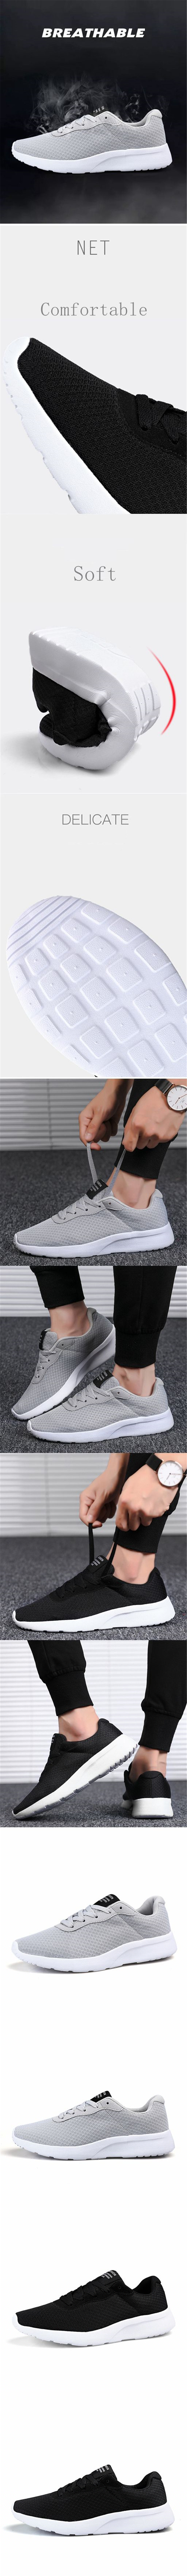 Men Solid Color Comfortable Lightweight Breathable Casual Shoes- Gray EU 39